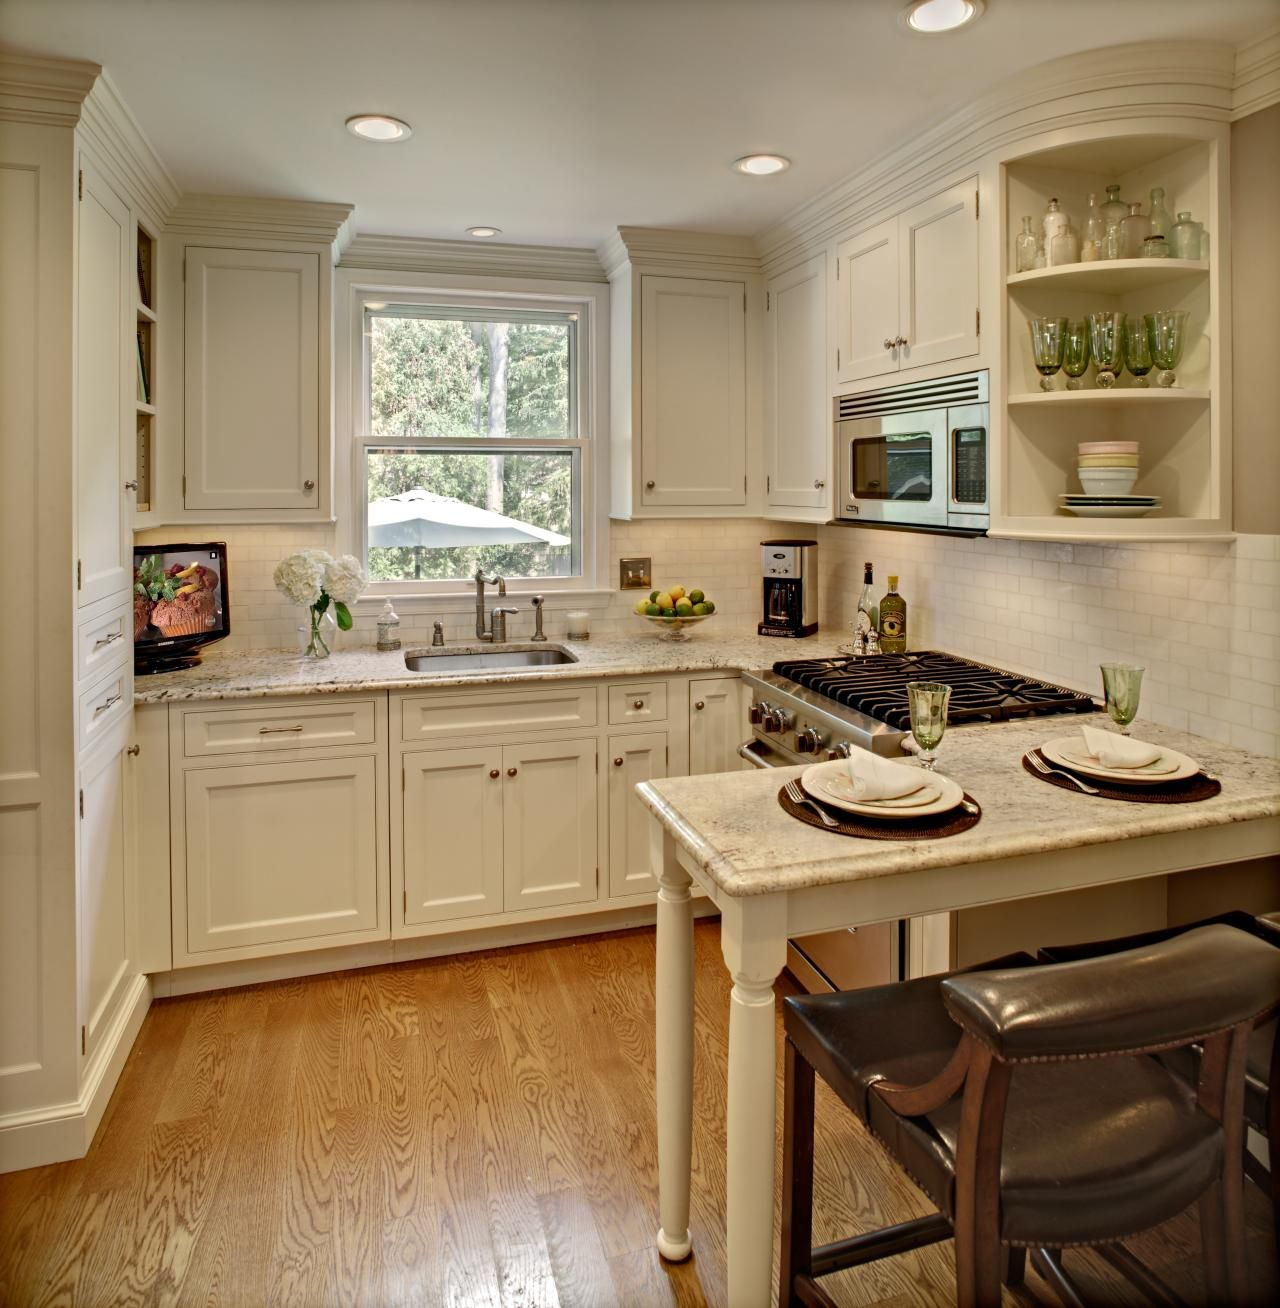 Small Kitchen With Images Square Layout